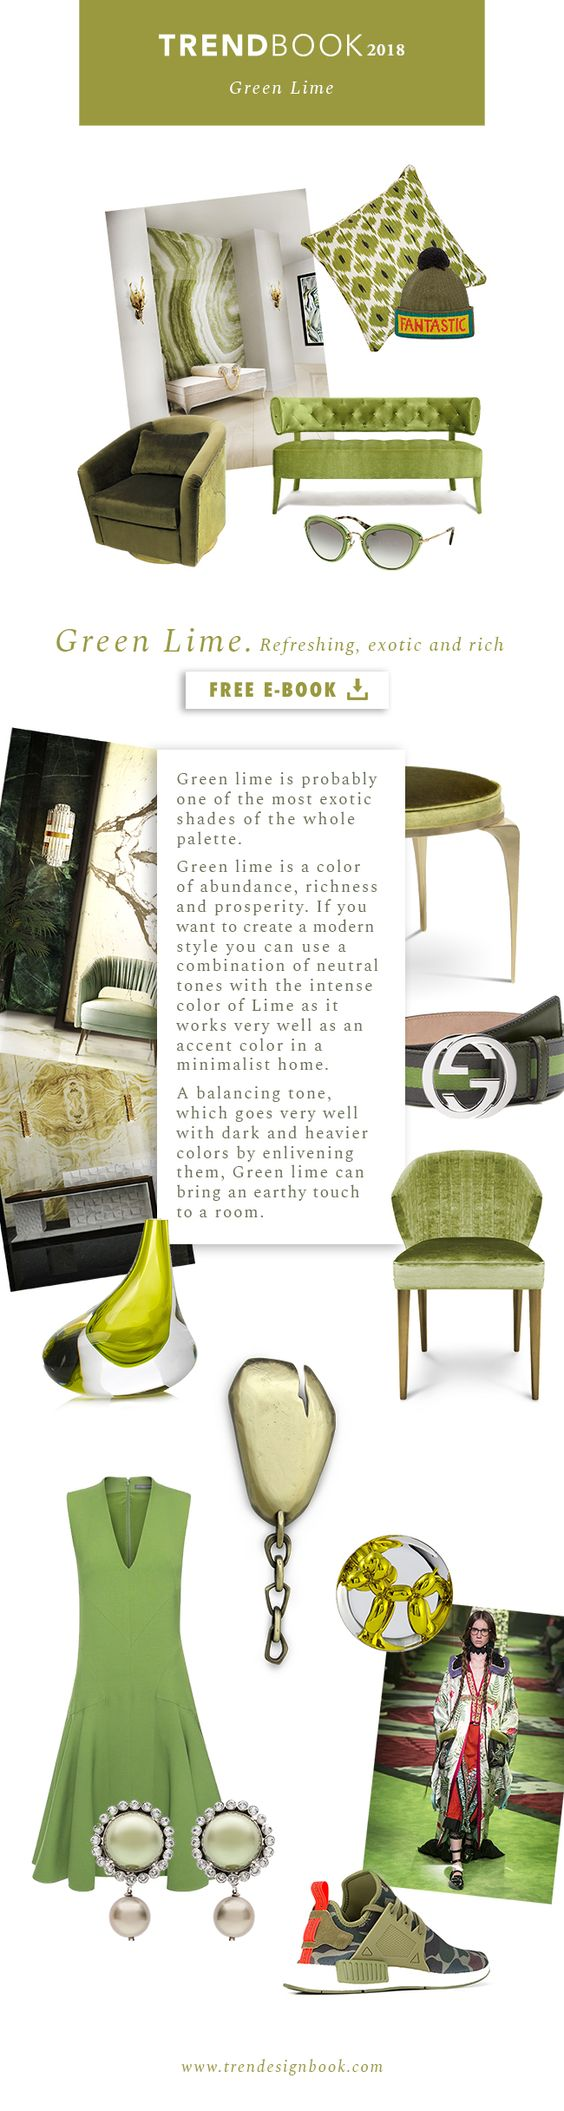 Color trends Fall/Winter 2017/18 Green Lime